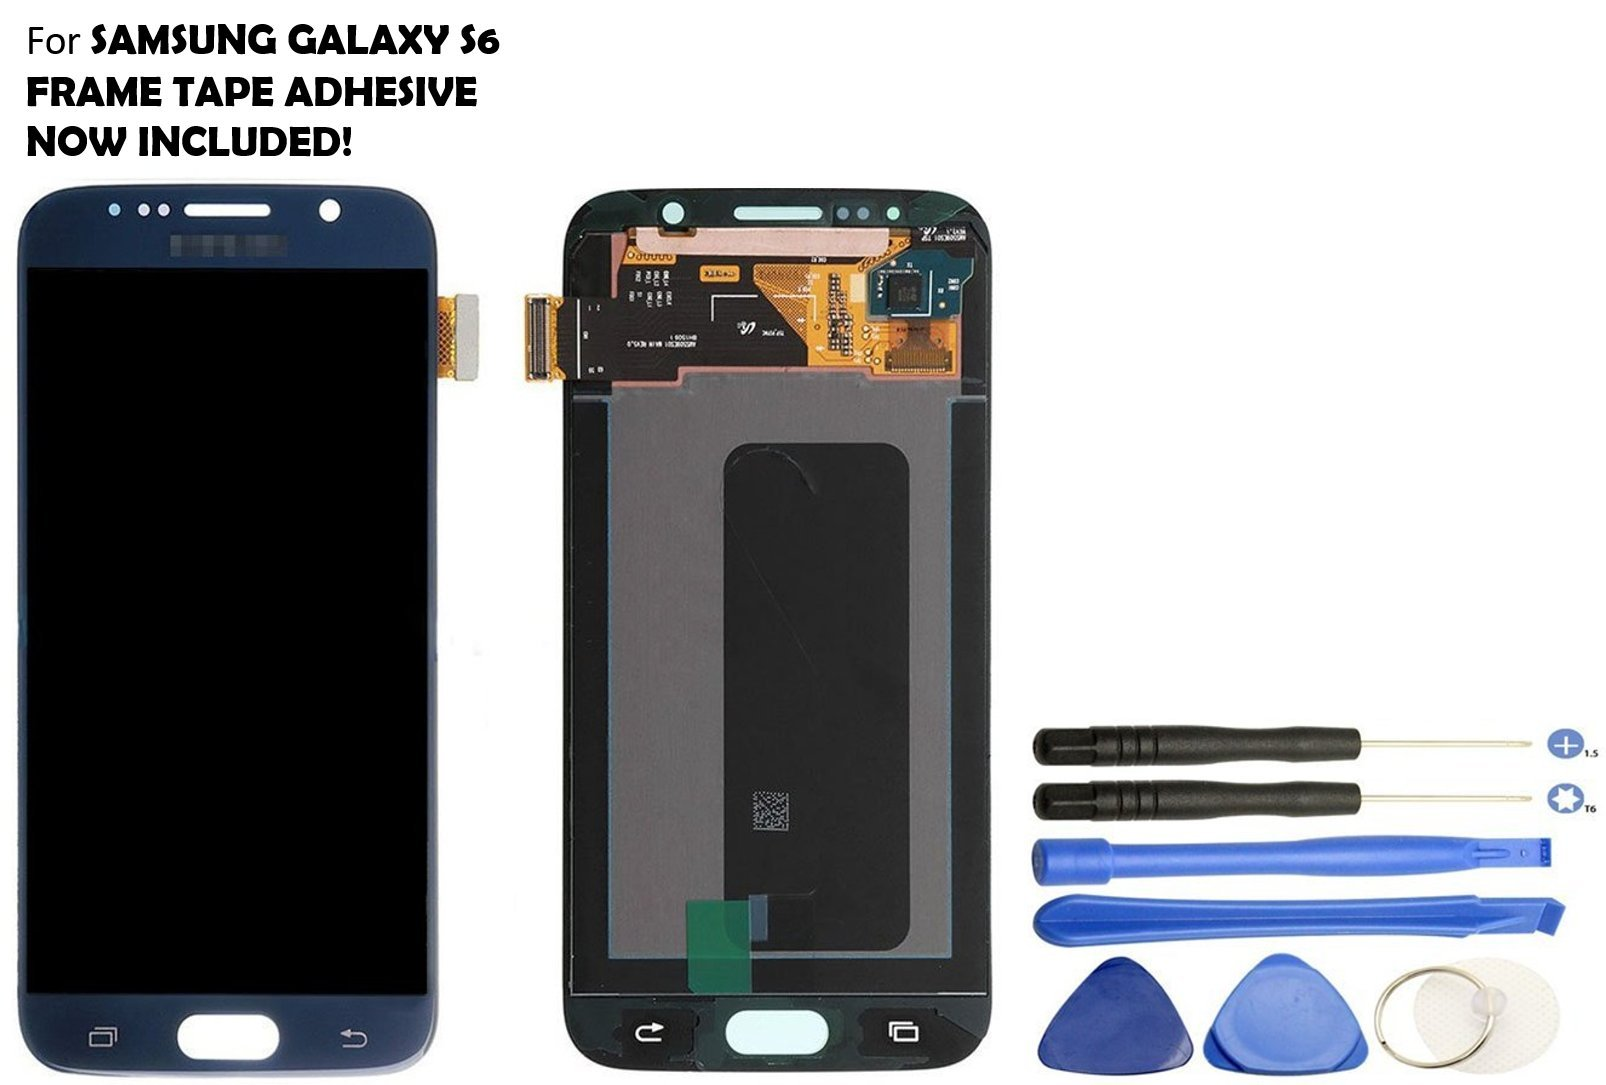 Galaxy S6 LCD Screen Replacement + Touch Digitizer Assembly for Samsung Galaxy S6 G920 G920A G920P G920T G920V G920R4 G920F , with Repair Tools (Black/Blue) by Veritas Cellular (Image #1)